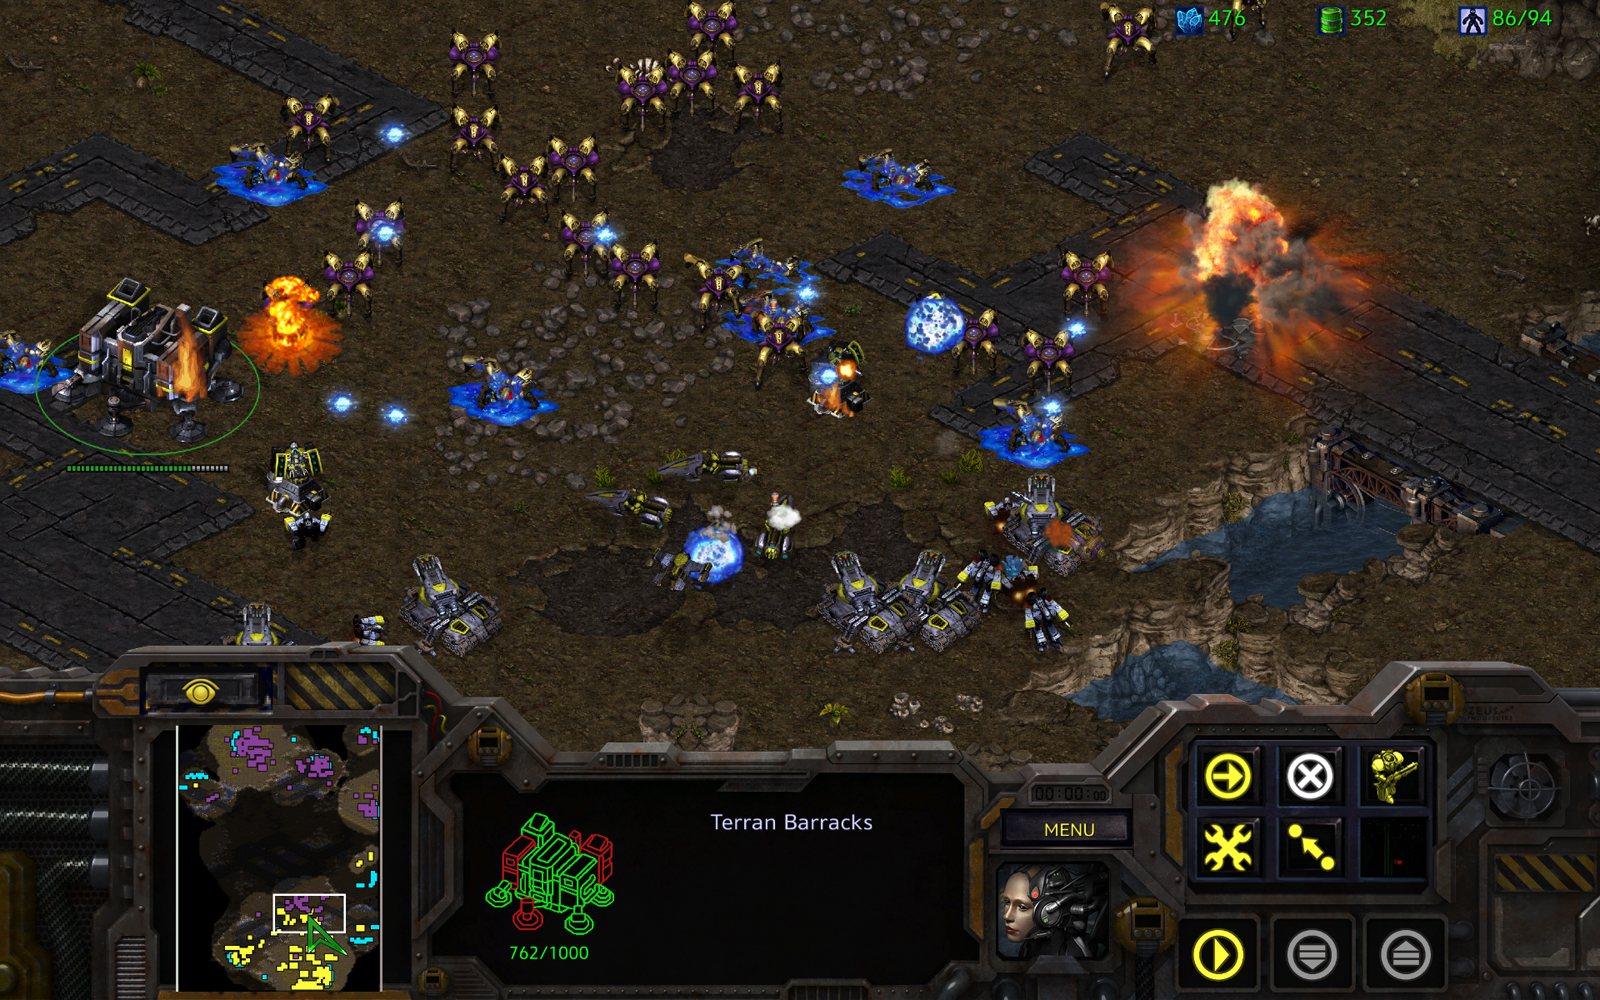 StarCraft is Now Free: Here's How to Get It | Tom's Guide